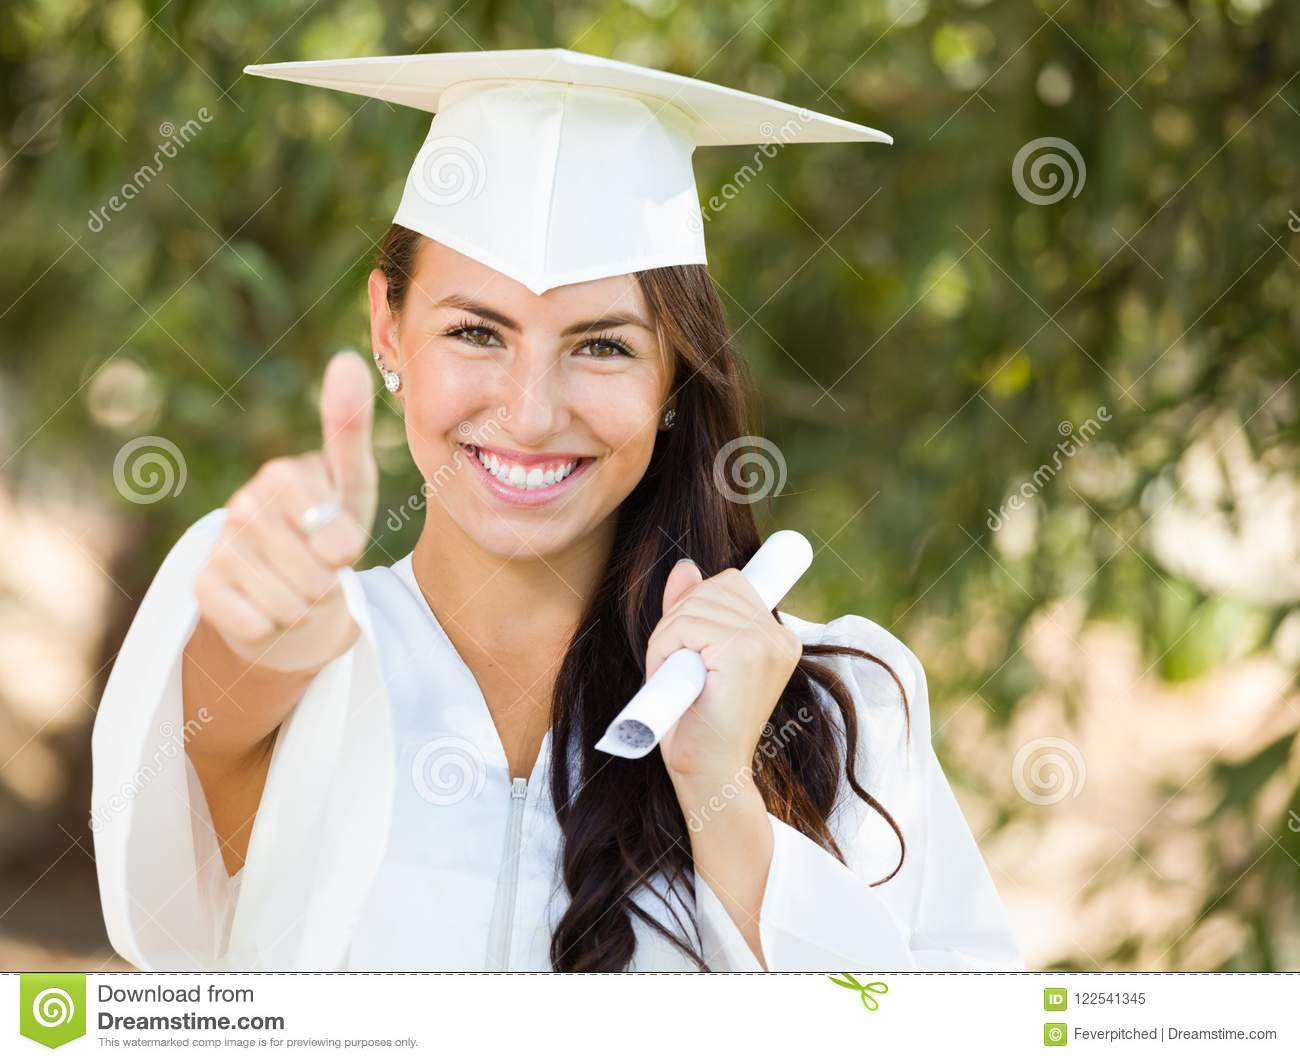 Mixed Race Teen Girl Gives Thumbs Up at Graduation In Cap and Gown